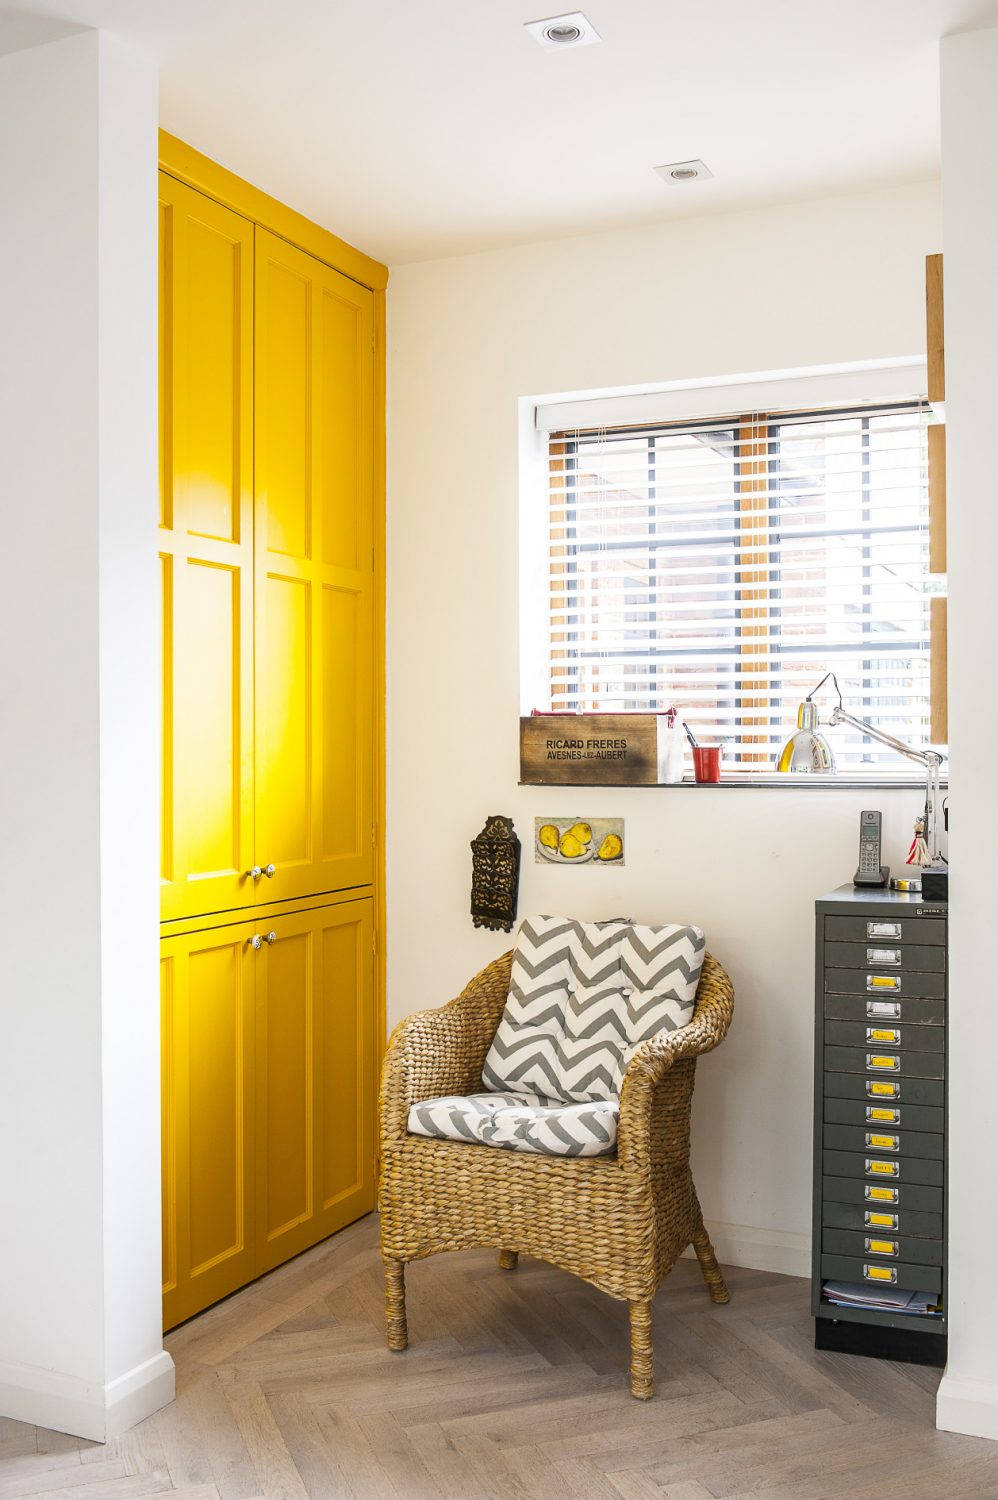 The 'simple yellow' of the Tesco bar stools in the kitchen is echoed by lamps in the living room and the painted doors of a downstairs storage cupboard.